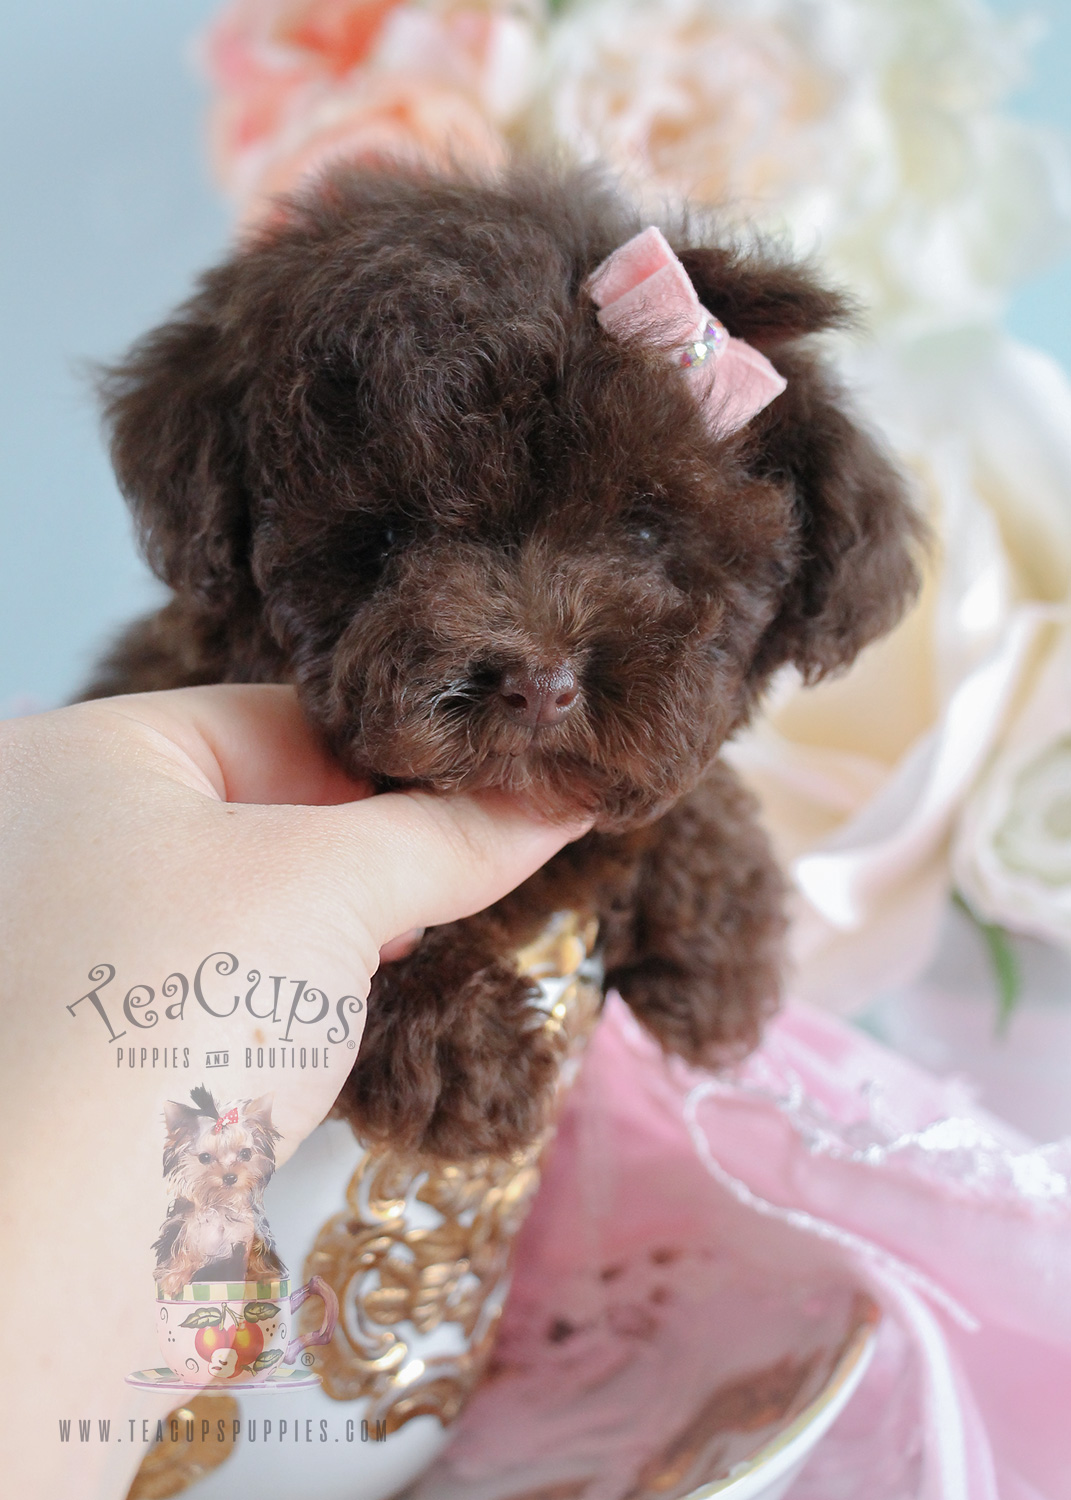 Chocolate Poodle Puppies at Teacups Puppies and Boutique For Sale